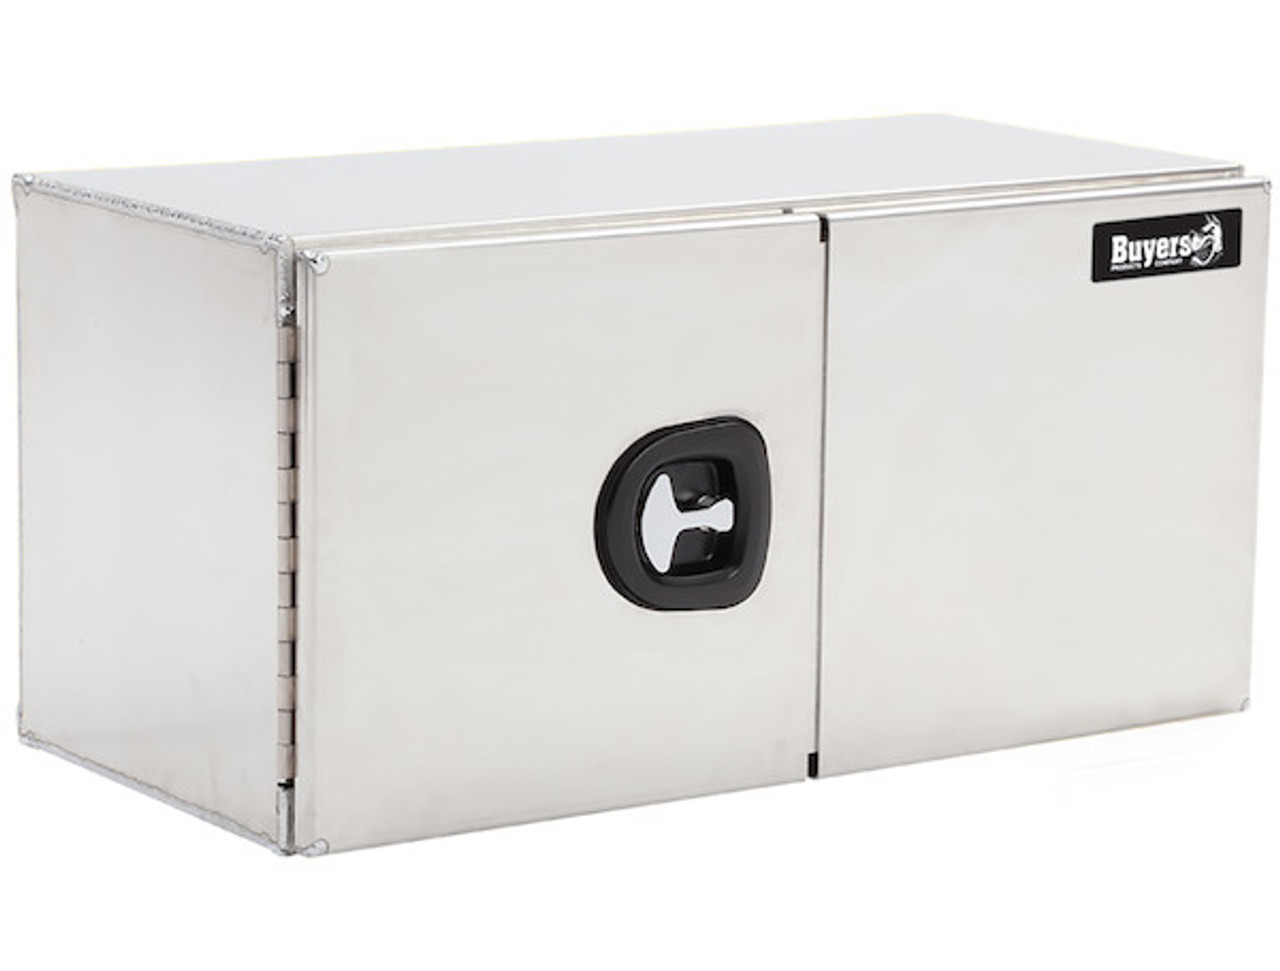 """1705340 BUYERS PRODUCTS SMOOTH ALUMINUM UNDERBODY TOOLBOX WITH BARN DOOR 24""""HX24""""DX48""""W"""